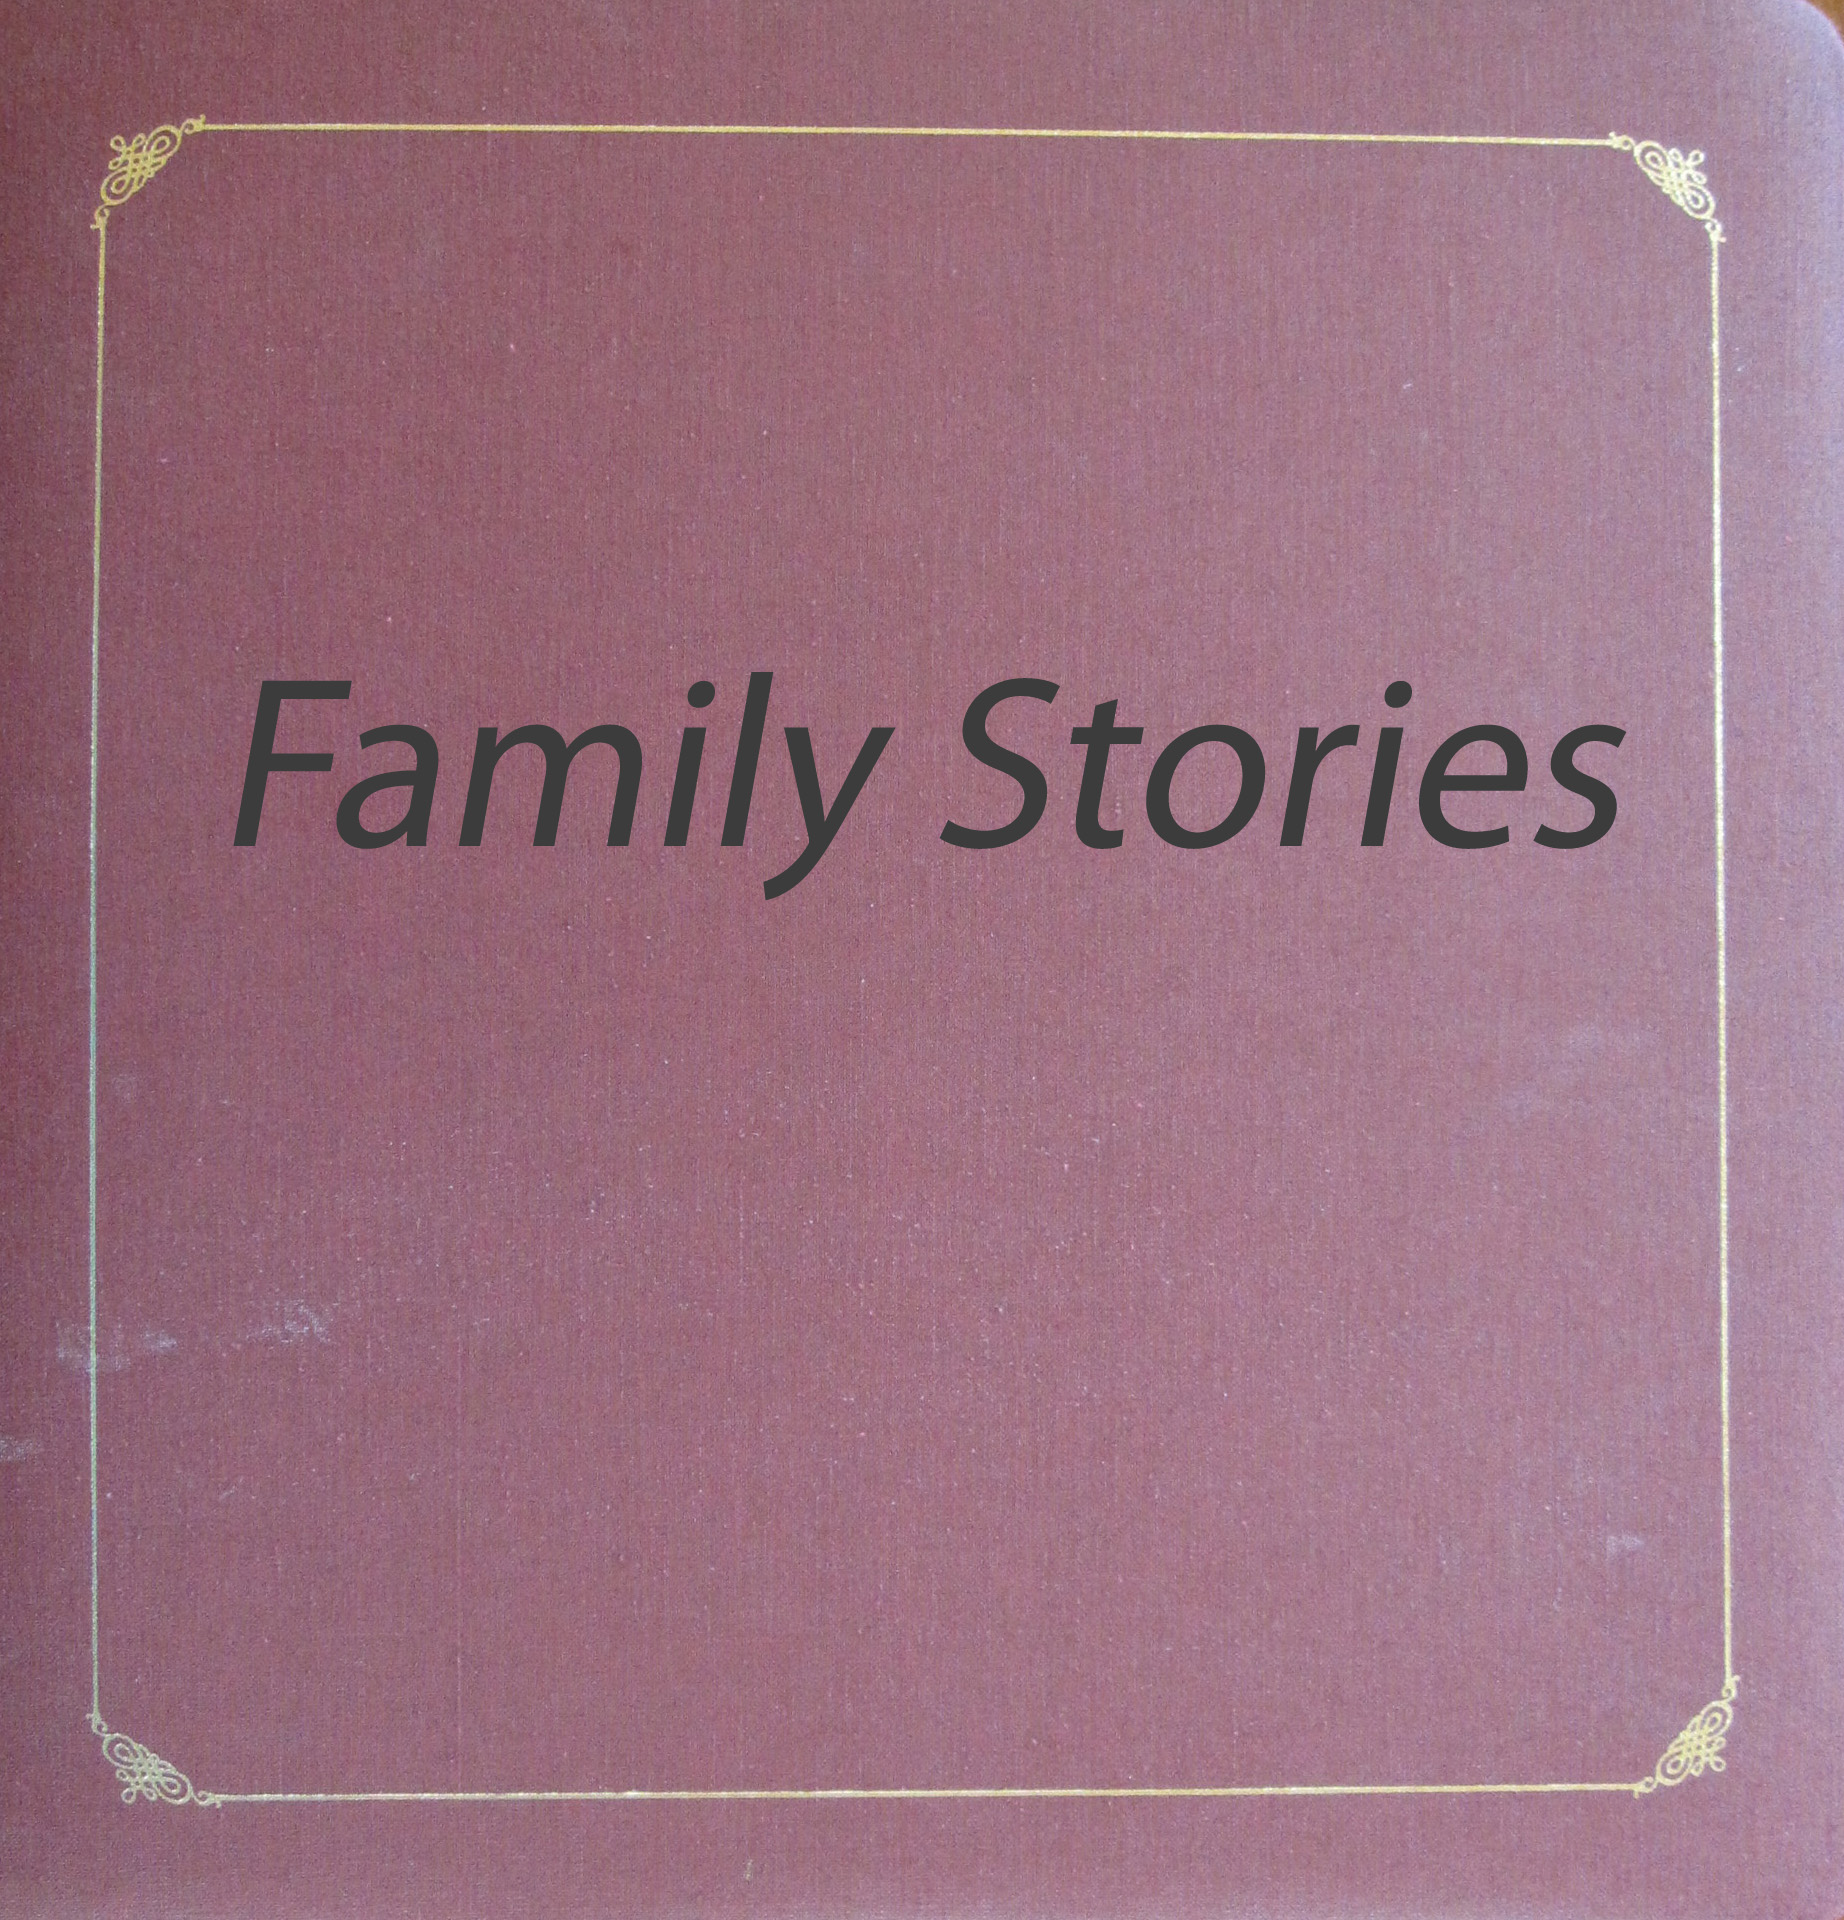 family stories Meeting God in Family Stories